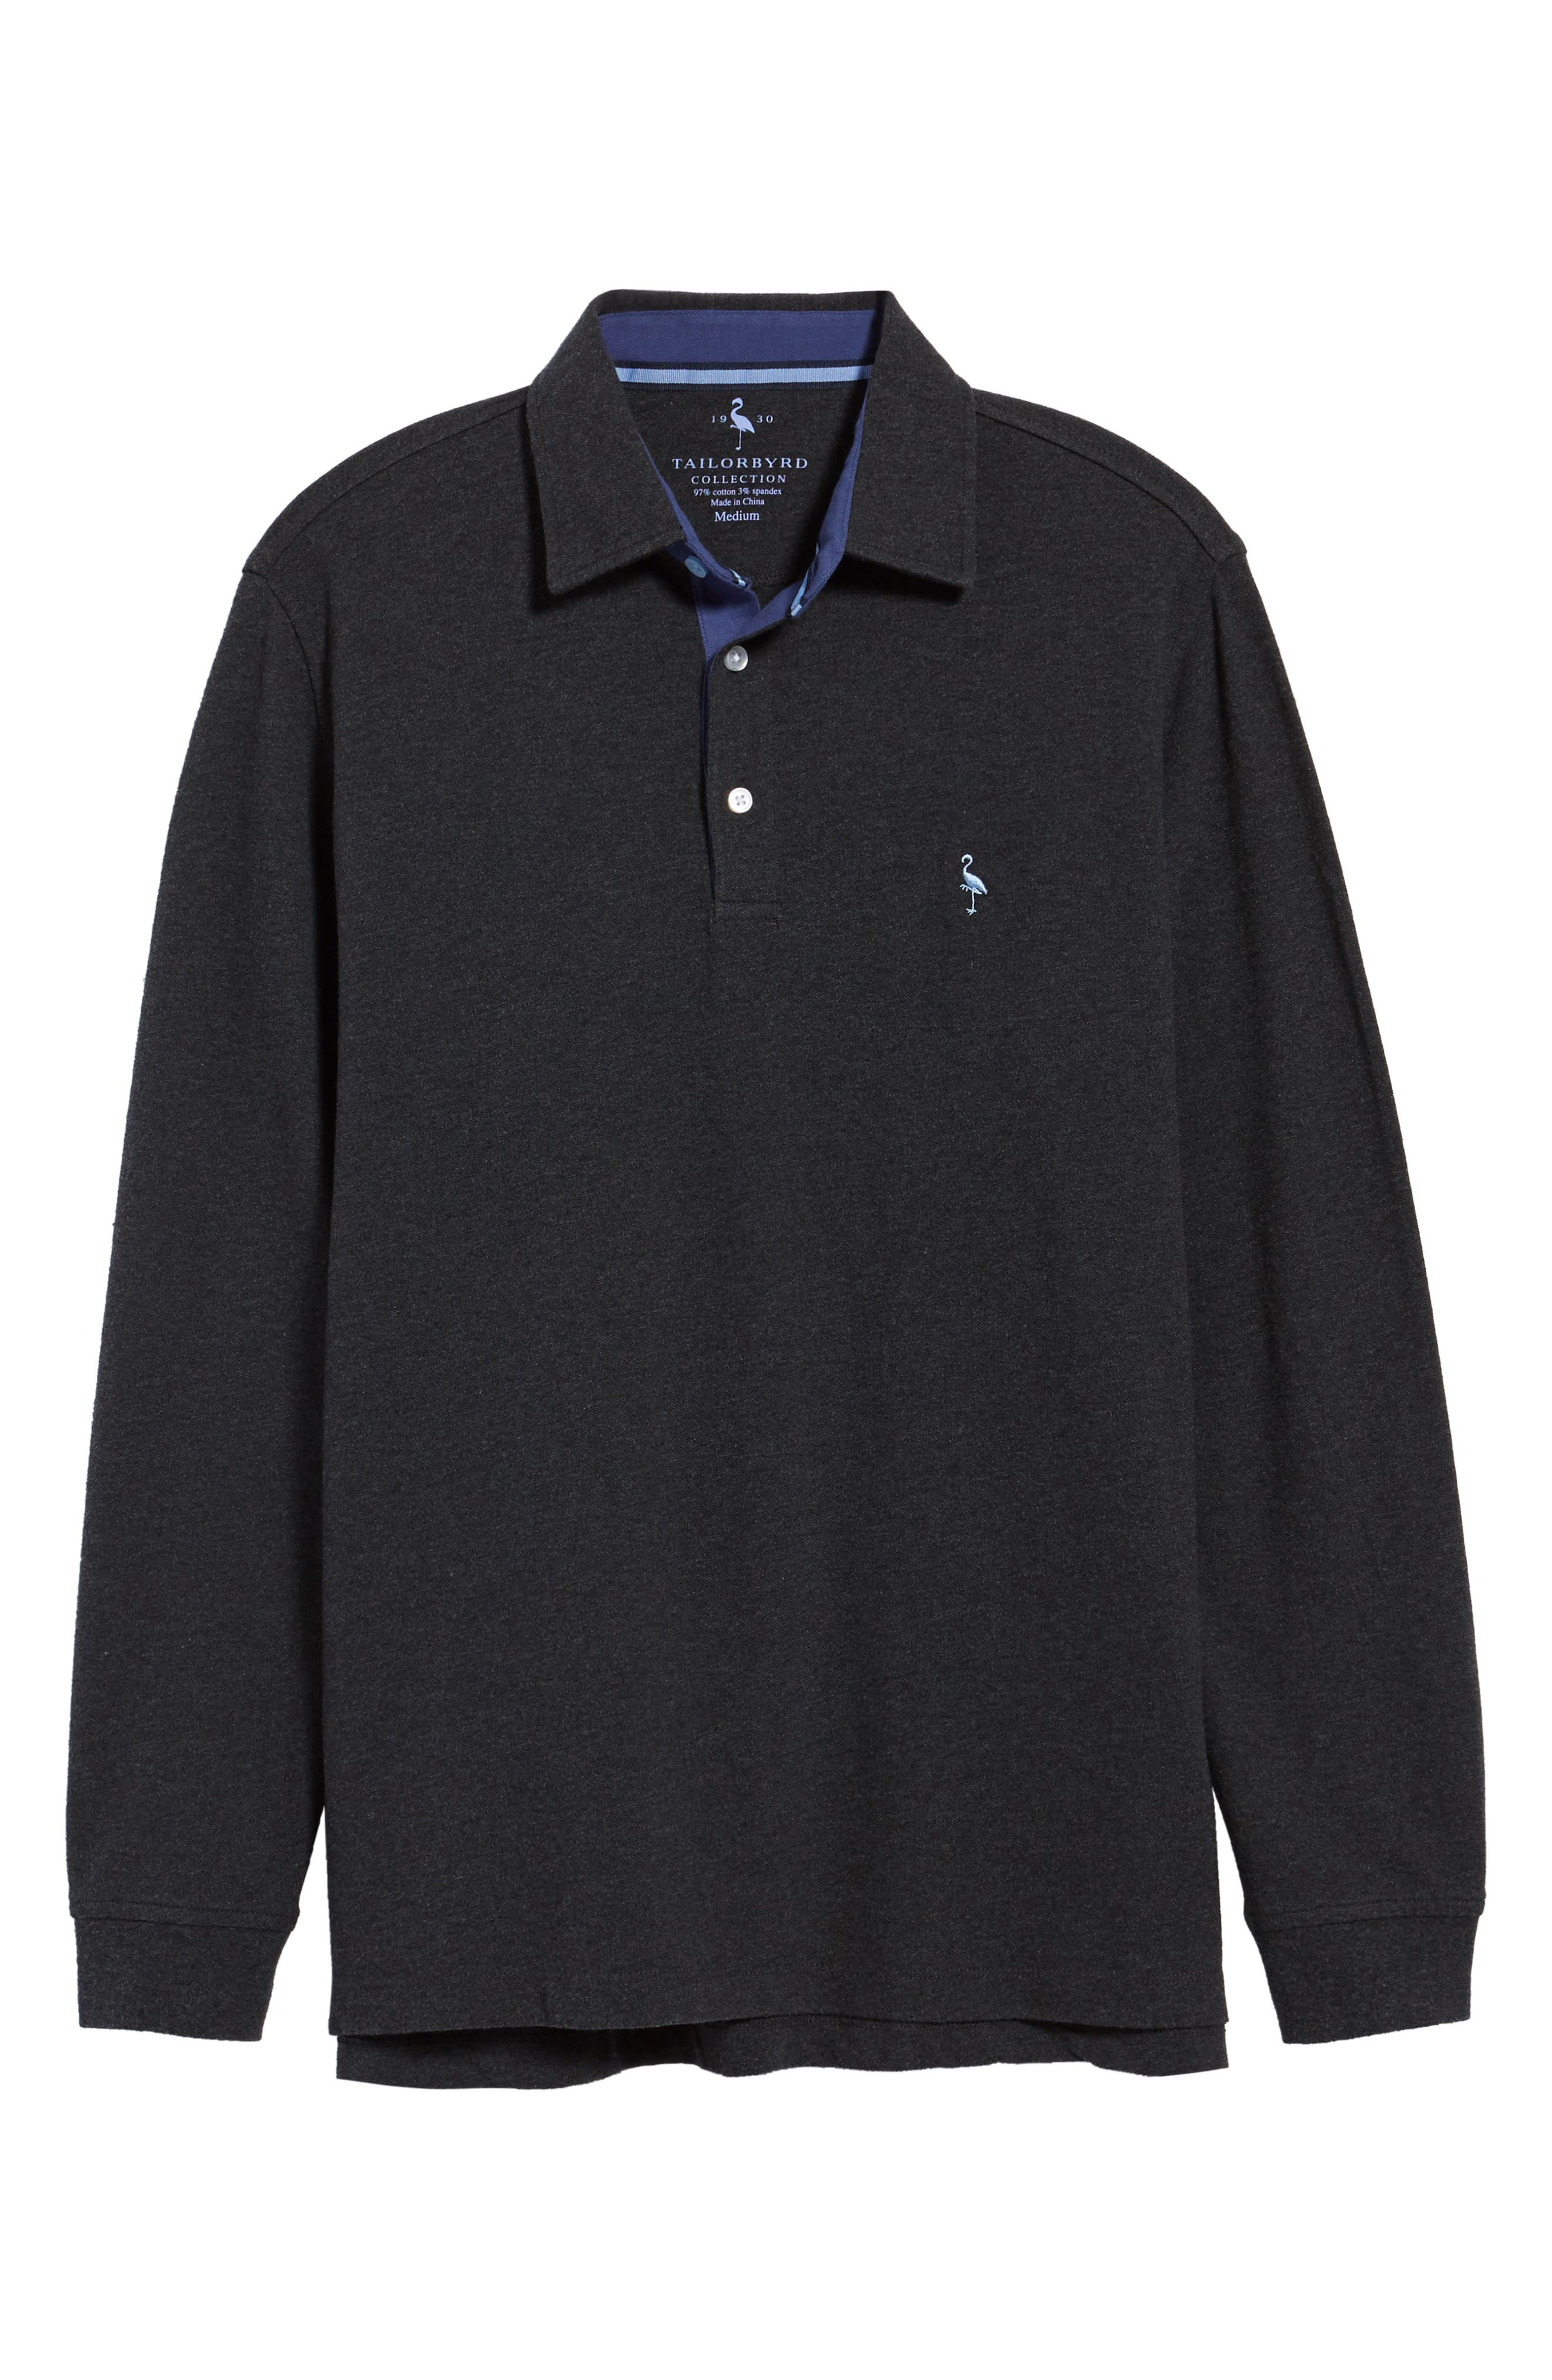 Two-Tone Piqué Knit Polo,                             Alternate thumbnail 6, color,                             020